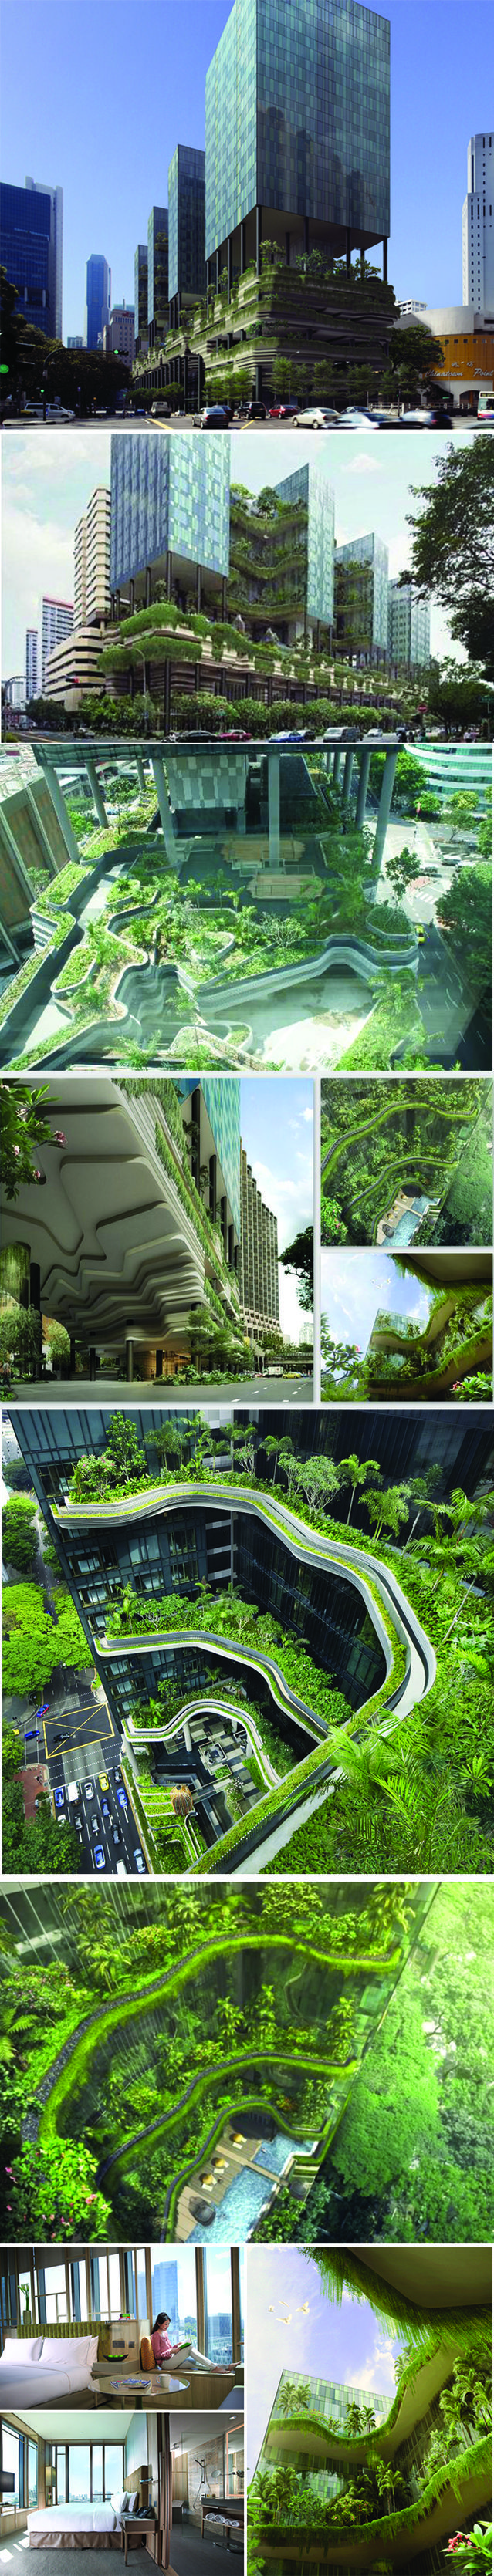 Parkroyal located in central Singapore by Woha Architect